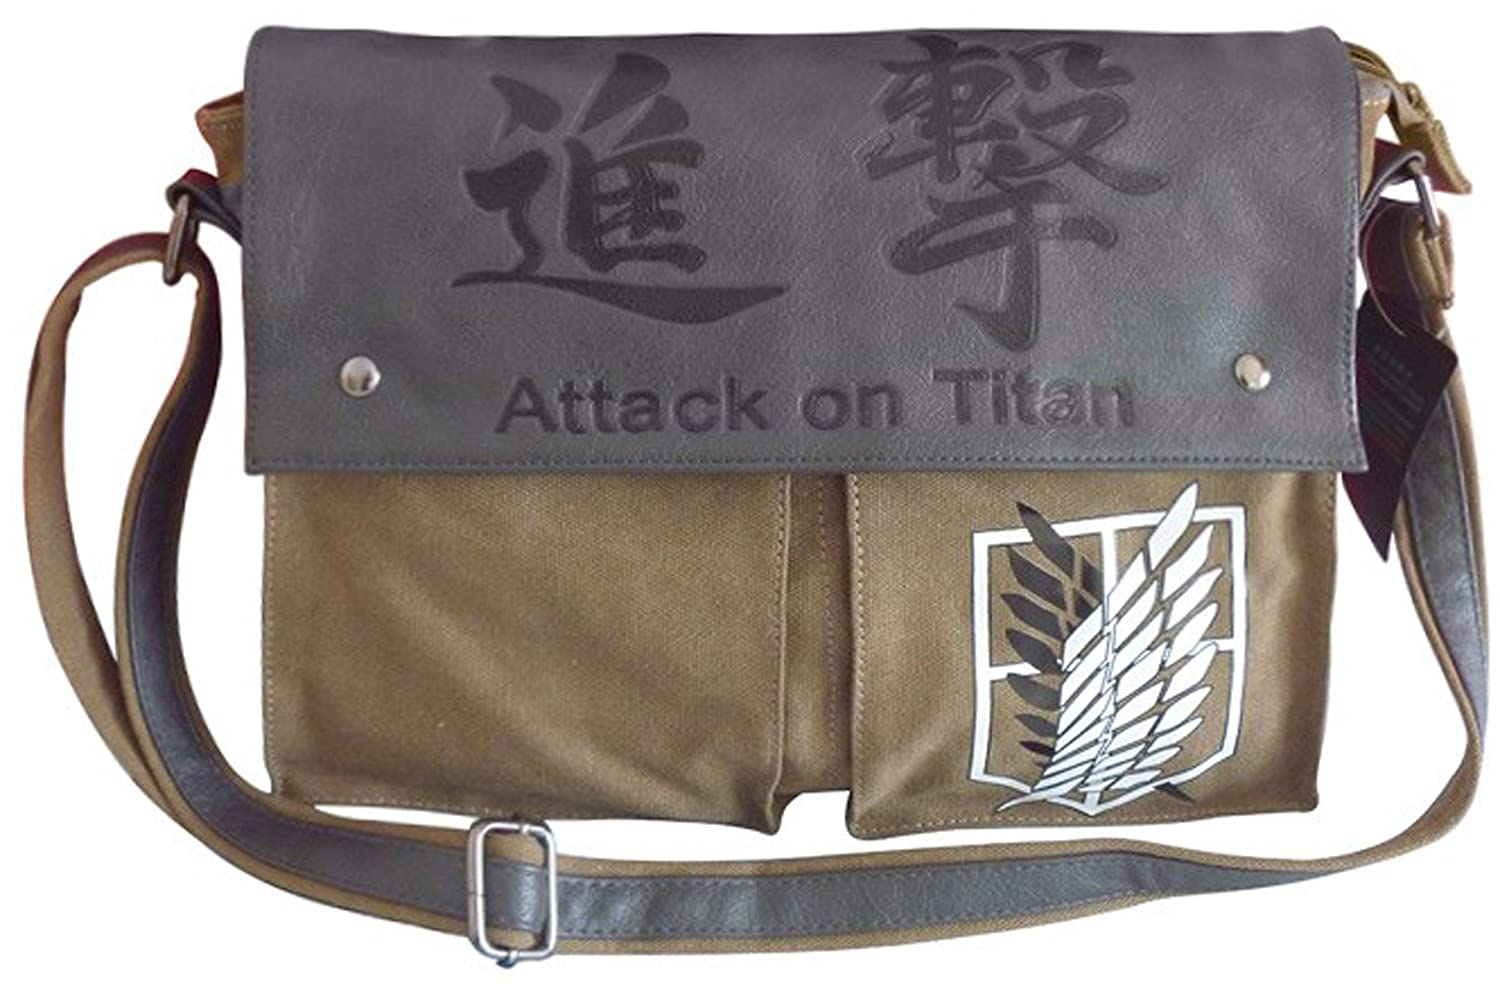 NuoYa001 Anime Shoulder Bag Canvas Messenger Satchel Attack on Titan no Kyojin Scouting hot selling anime inuyasha sesshoumaru cosplay shoulders oxford bag backpack cartoon cute schoolbag satchel book bags